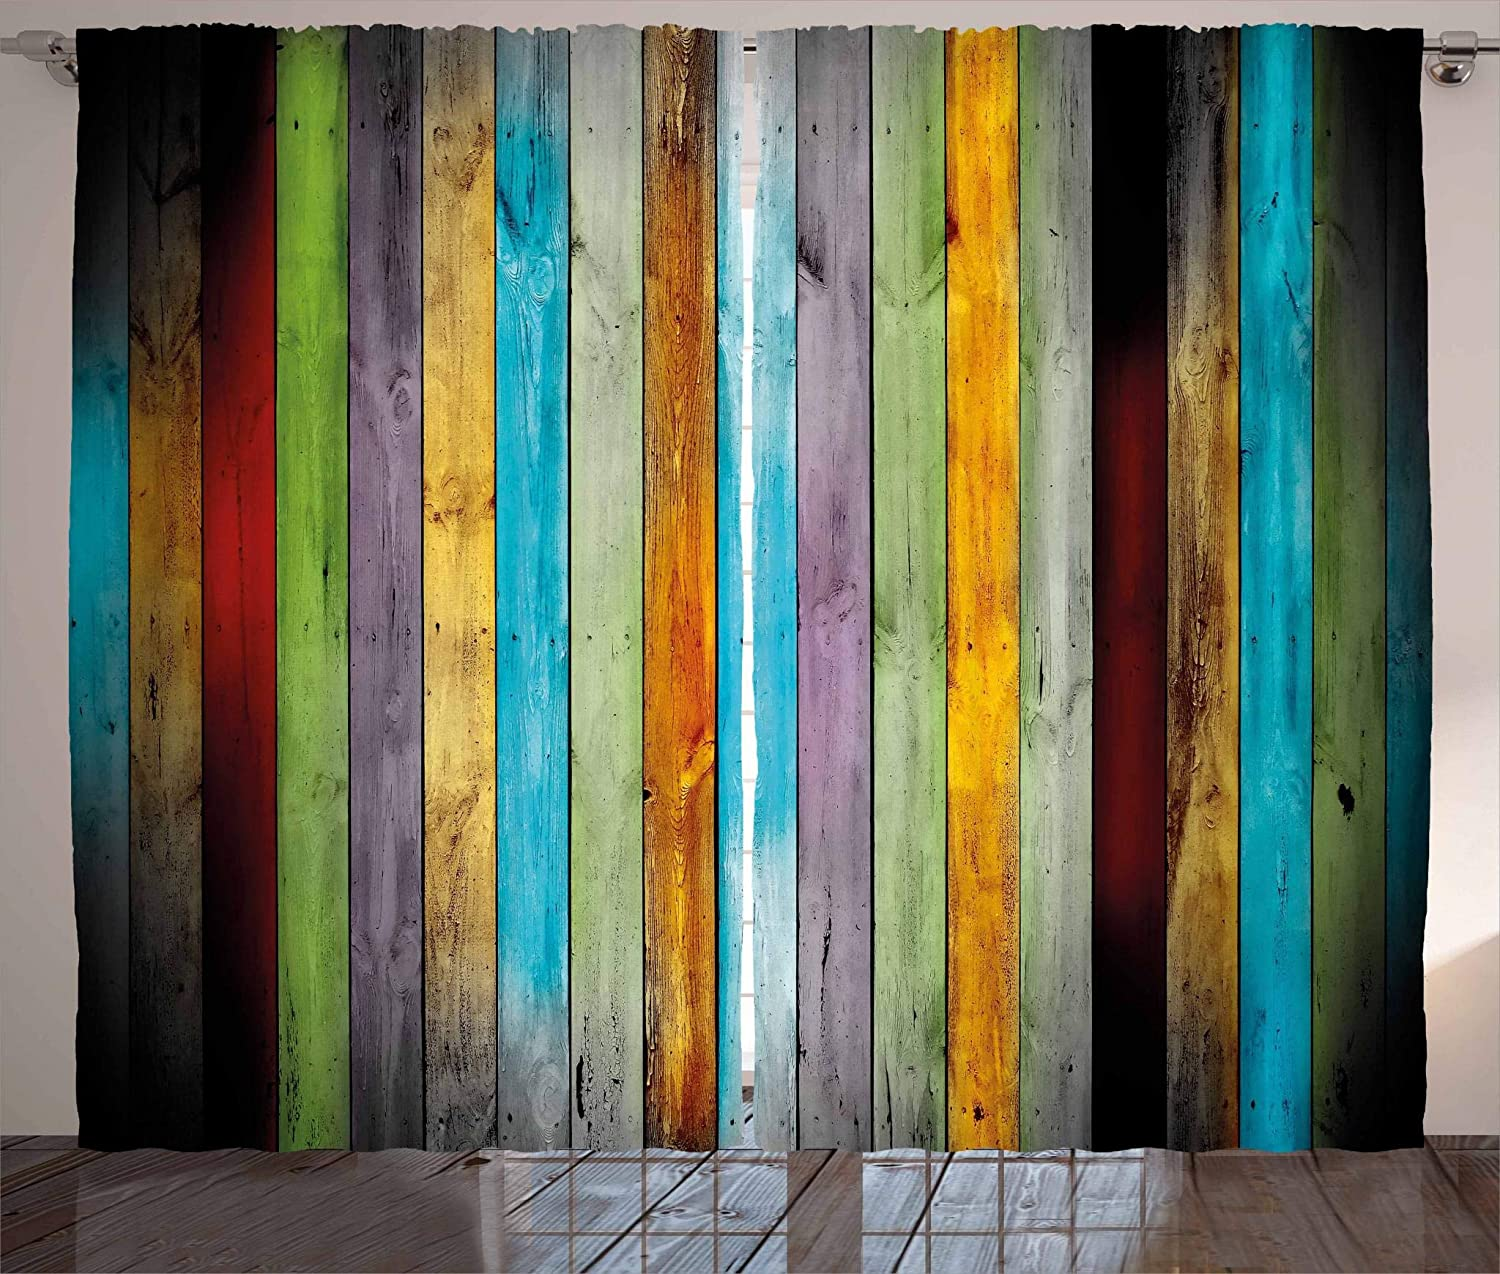 Lunarable Colorful Curtains, Vertical Wood Planks in Different Colors Carpentry Oak Timber Rustic Country Life, Living Room Bedroom Window Drapes 2 Panel Set, 108 W X 63 L Inches, Multicolor